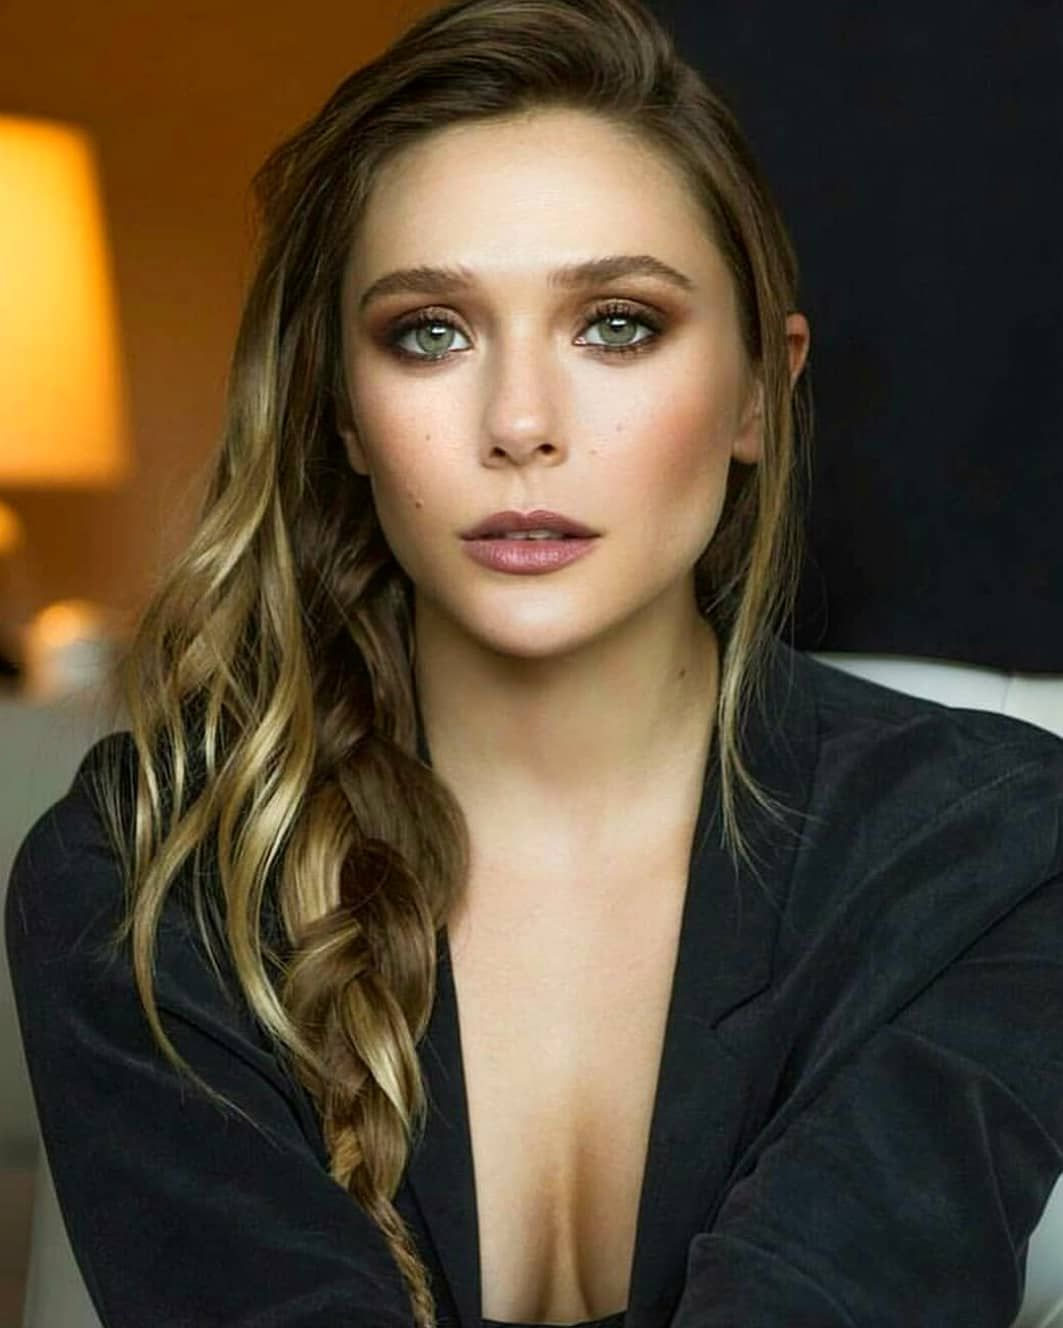 Elizabeth Olsen On Instagram Follow Elizabetholsen S Elizabetholsen Elizabeth Olsen Celebrities Beauty